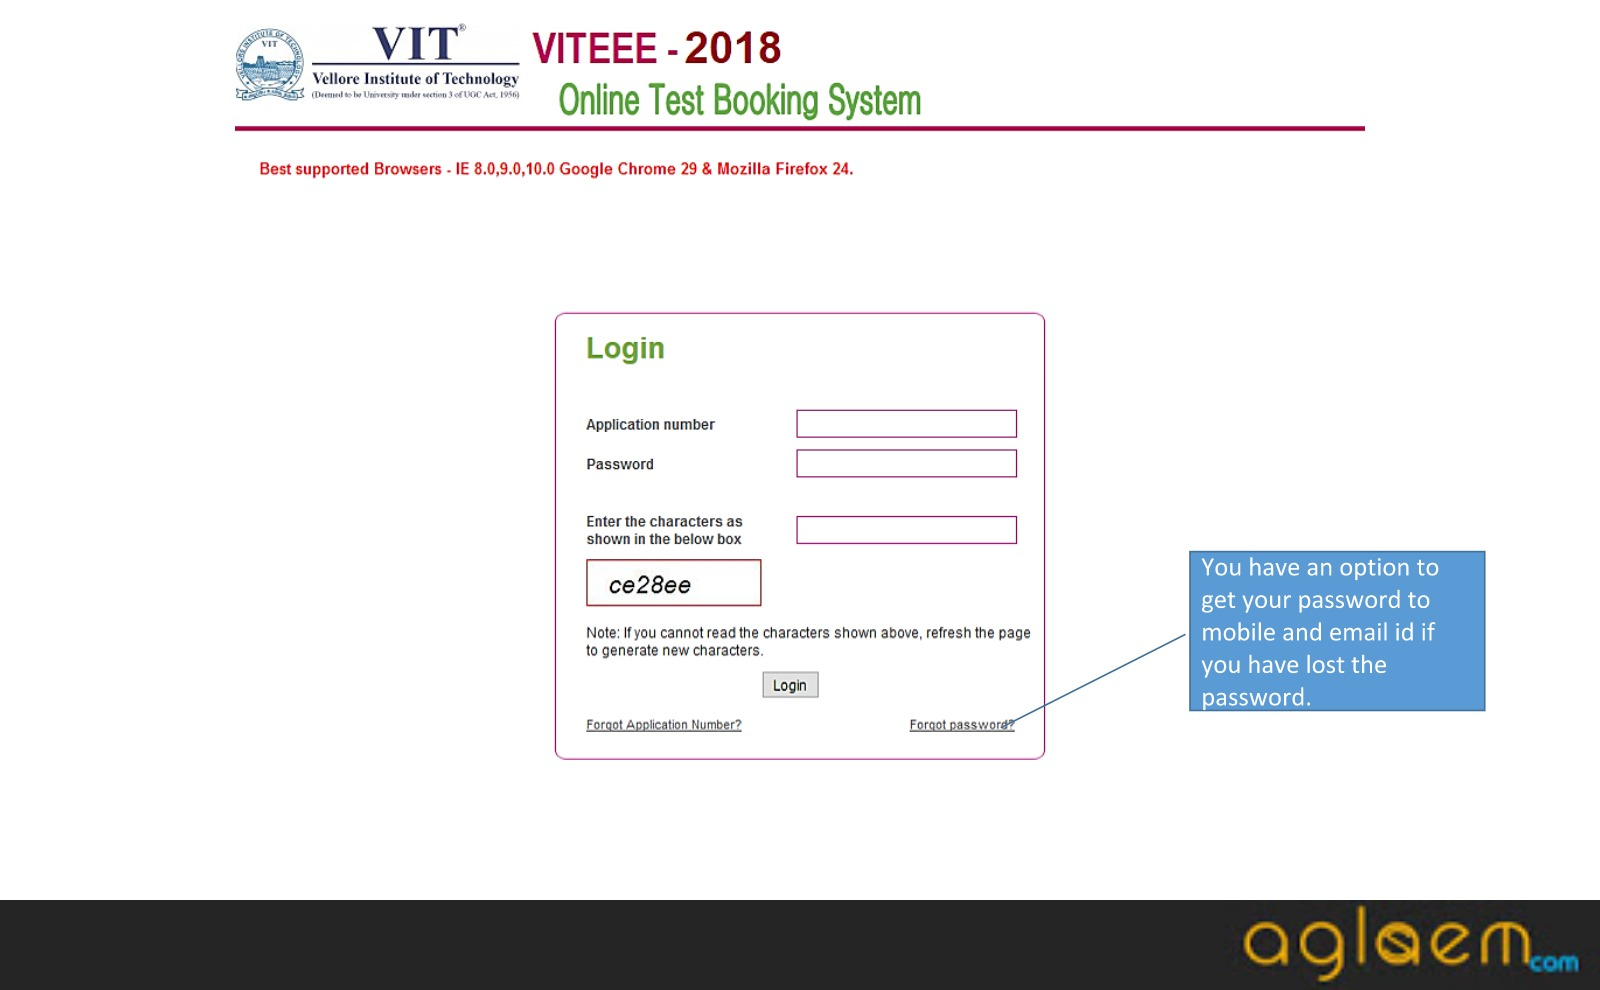 VITEEE 2018 Slot Booking Started - Book Your VIT University Slot Now!